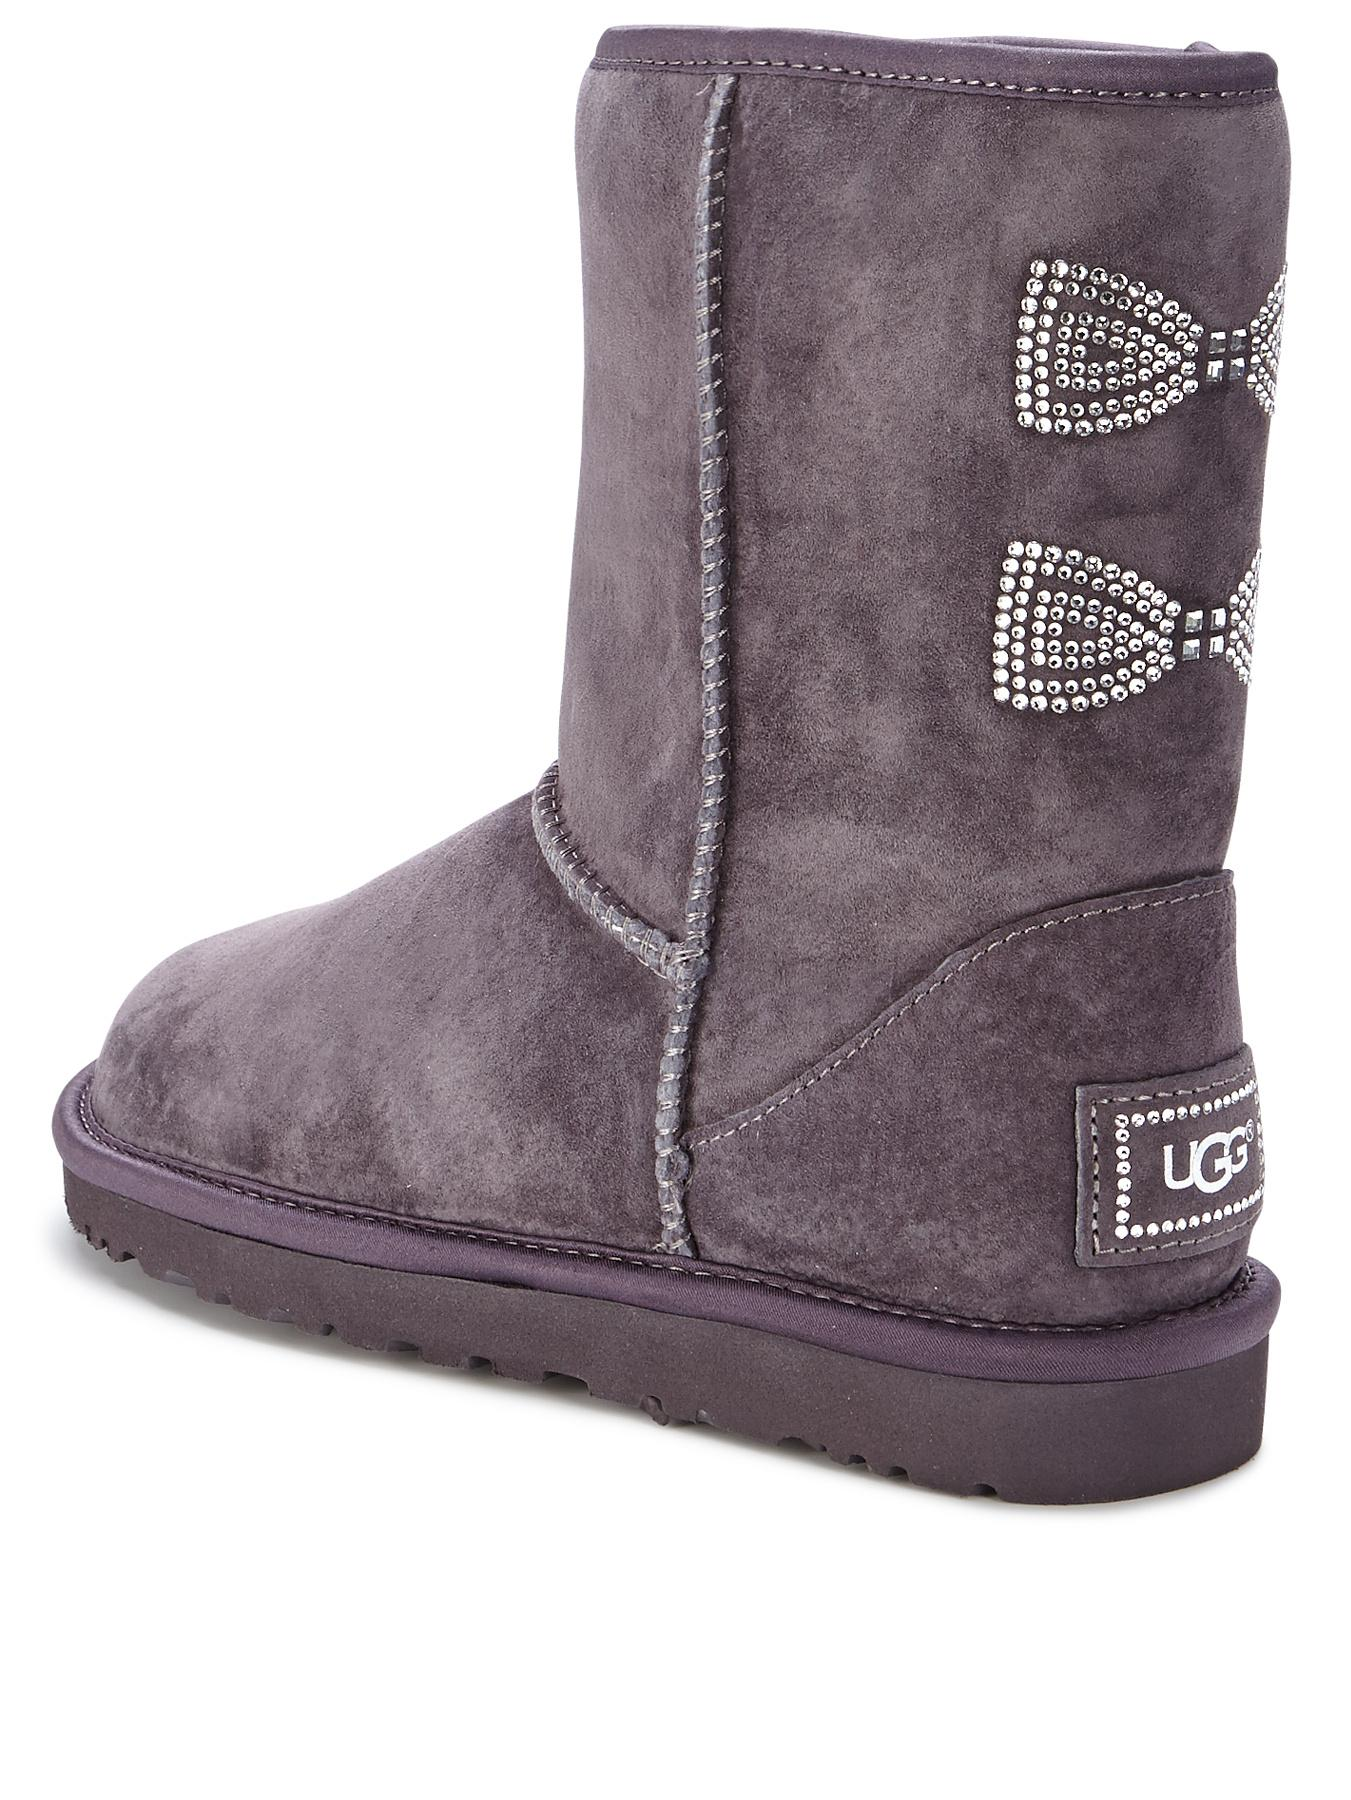 Short Uggs With Bows | NATIONAL SHERIFFS' ASSOCIATION